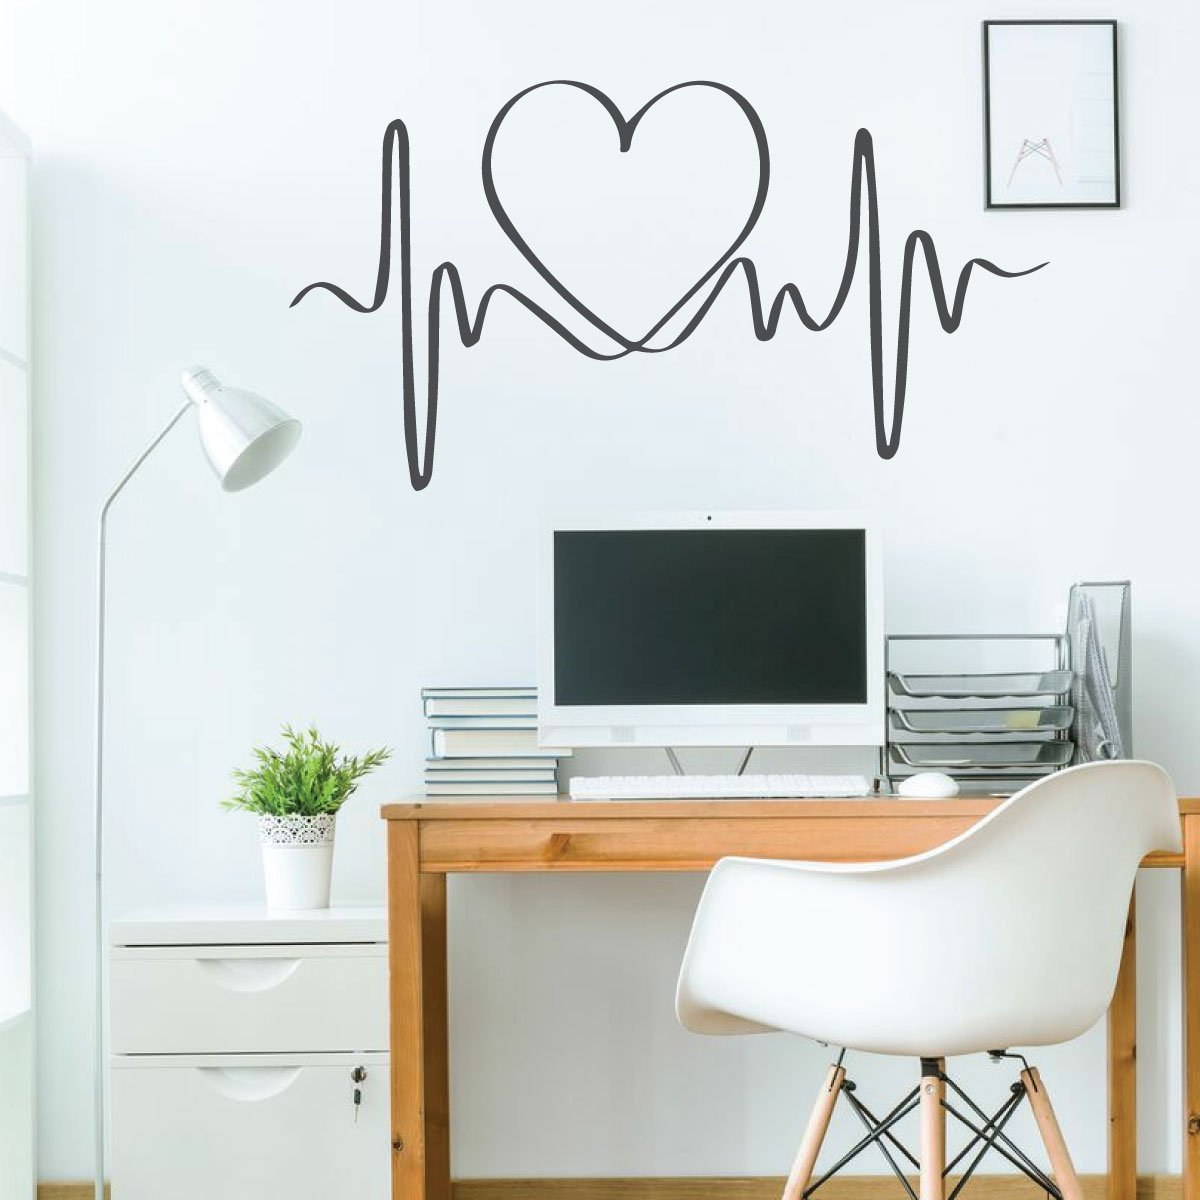 Heart Beat Design Wall Decal for Girls Bedroom Vinyl Decor